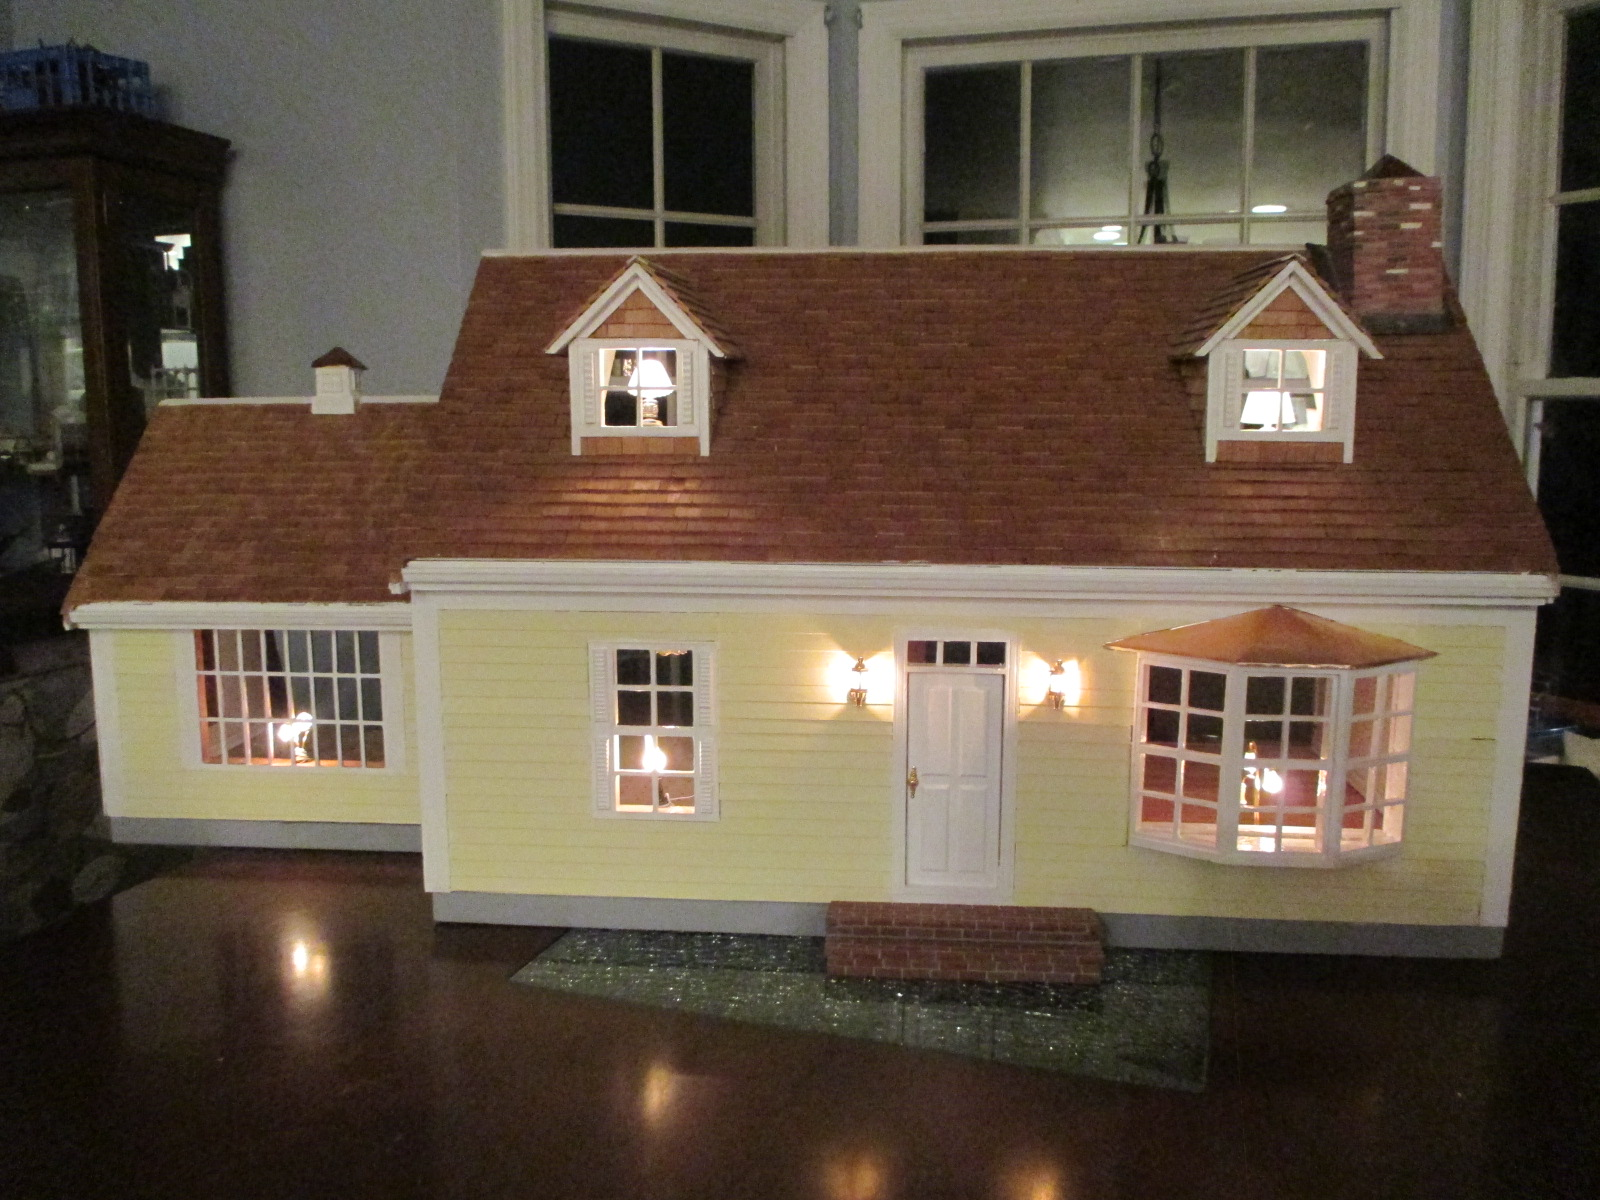 "Cape Cod Dollhouse in Yellow with Cedar Shakes - 1"" Scale"